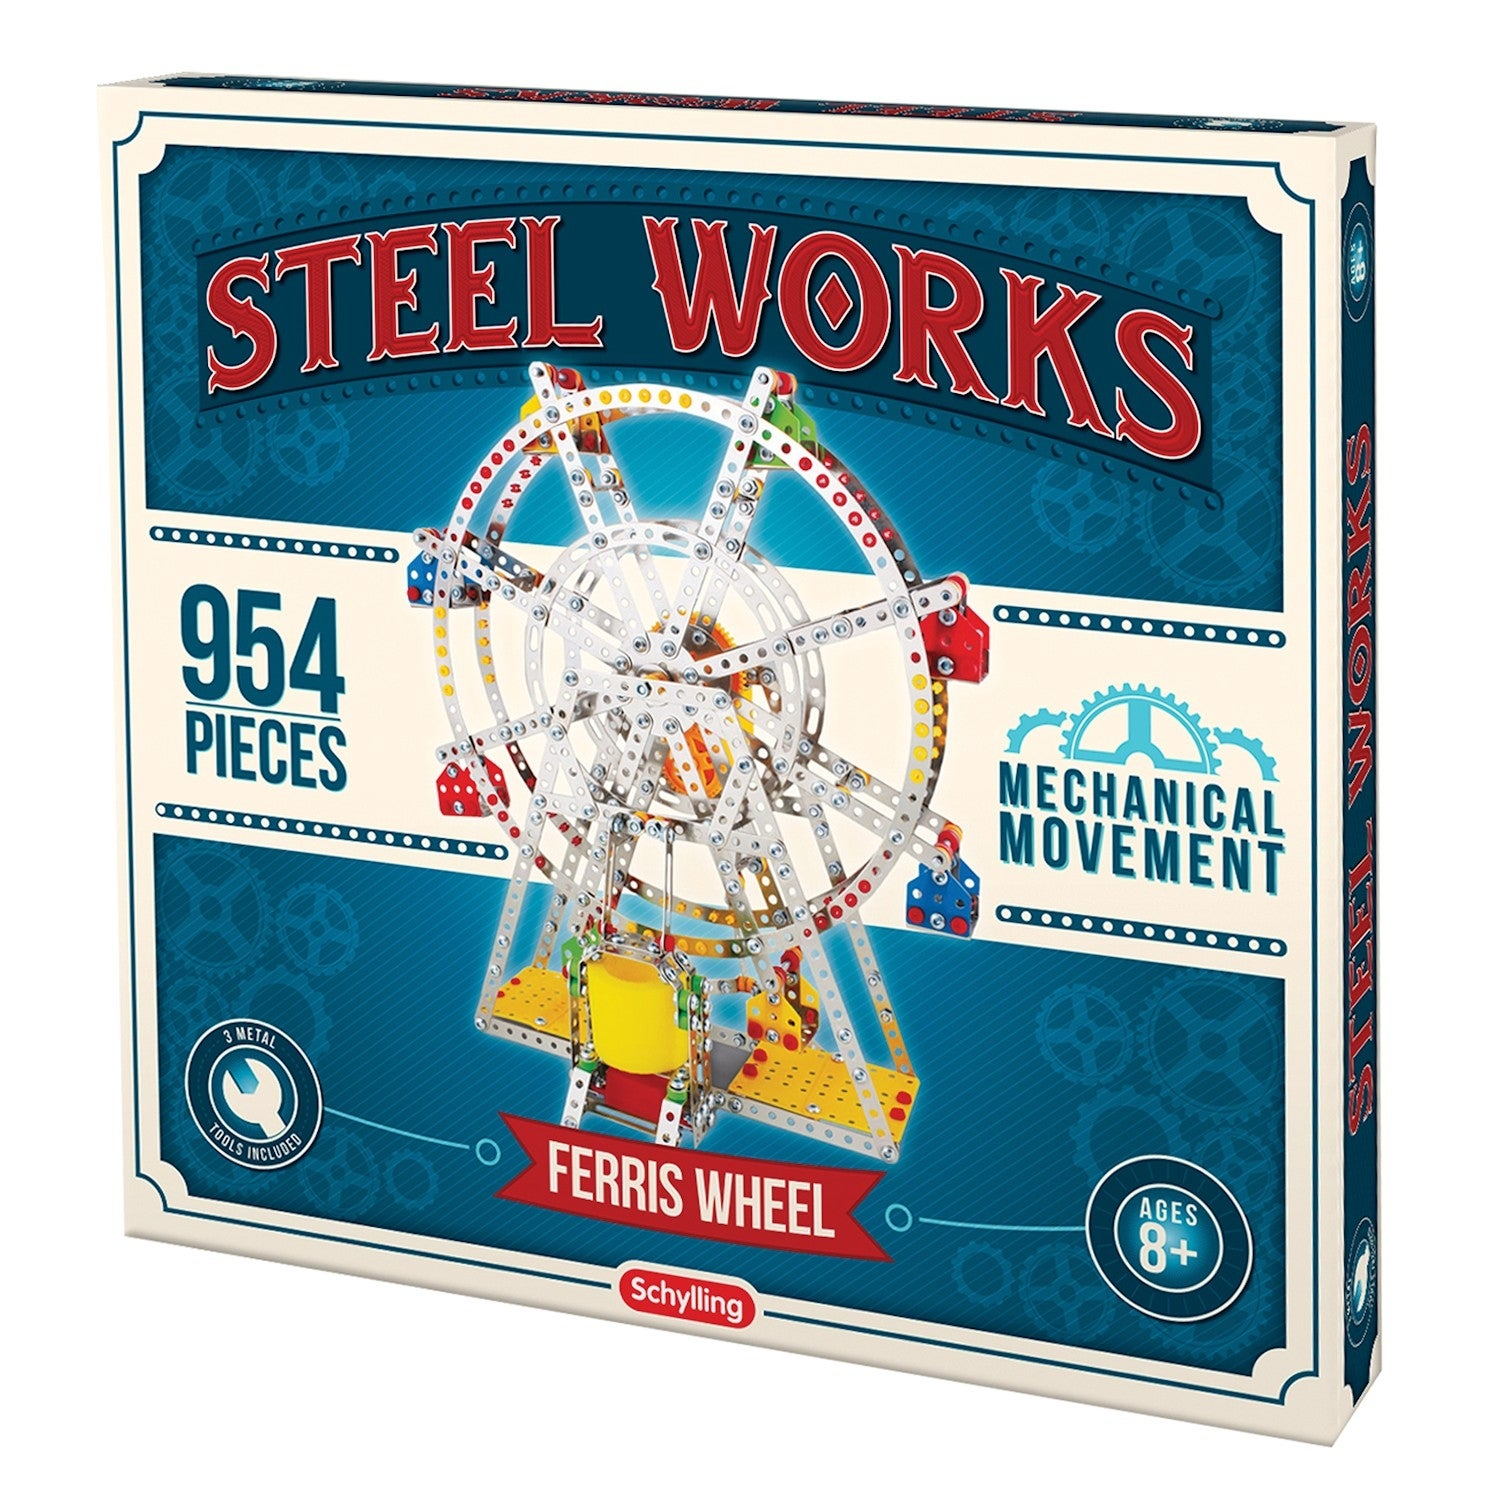 Steel Works Metal Model Ferris Wheel Fun Educational Project For Stem Kids 954 Pieces Overstock 20228407